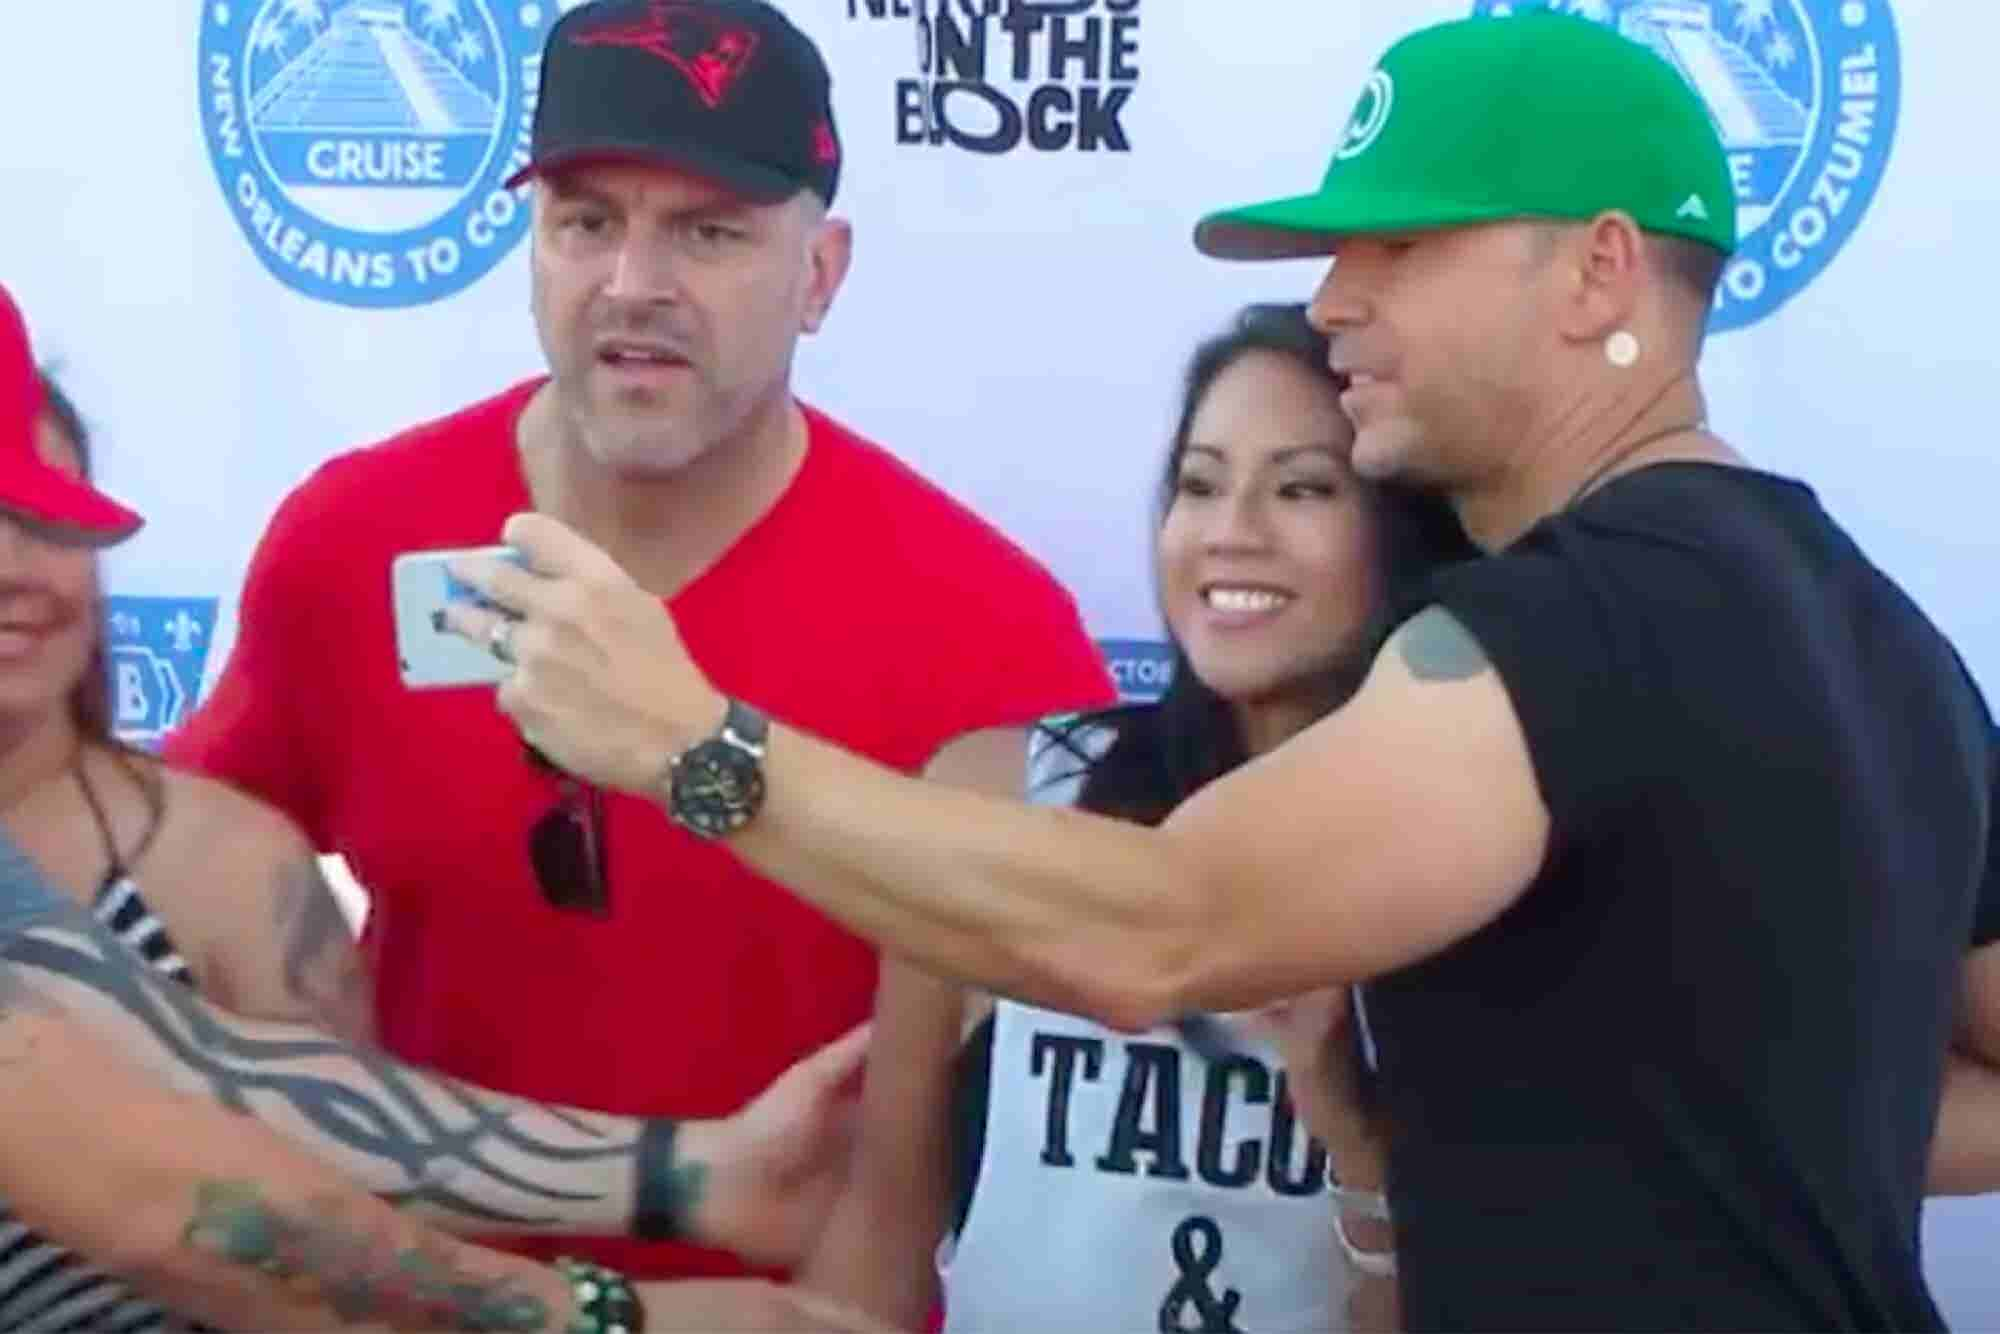 Donnie Wahlberg Just Broke the Guinness World Record for Most Selfies Taken in 3 Minutes. Here's Why That Matters.